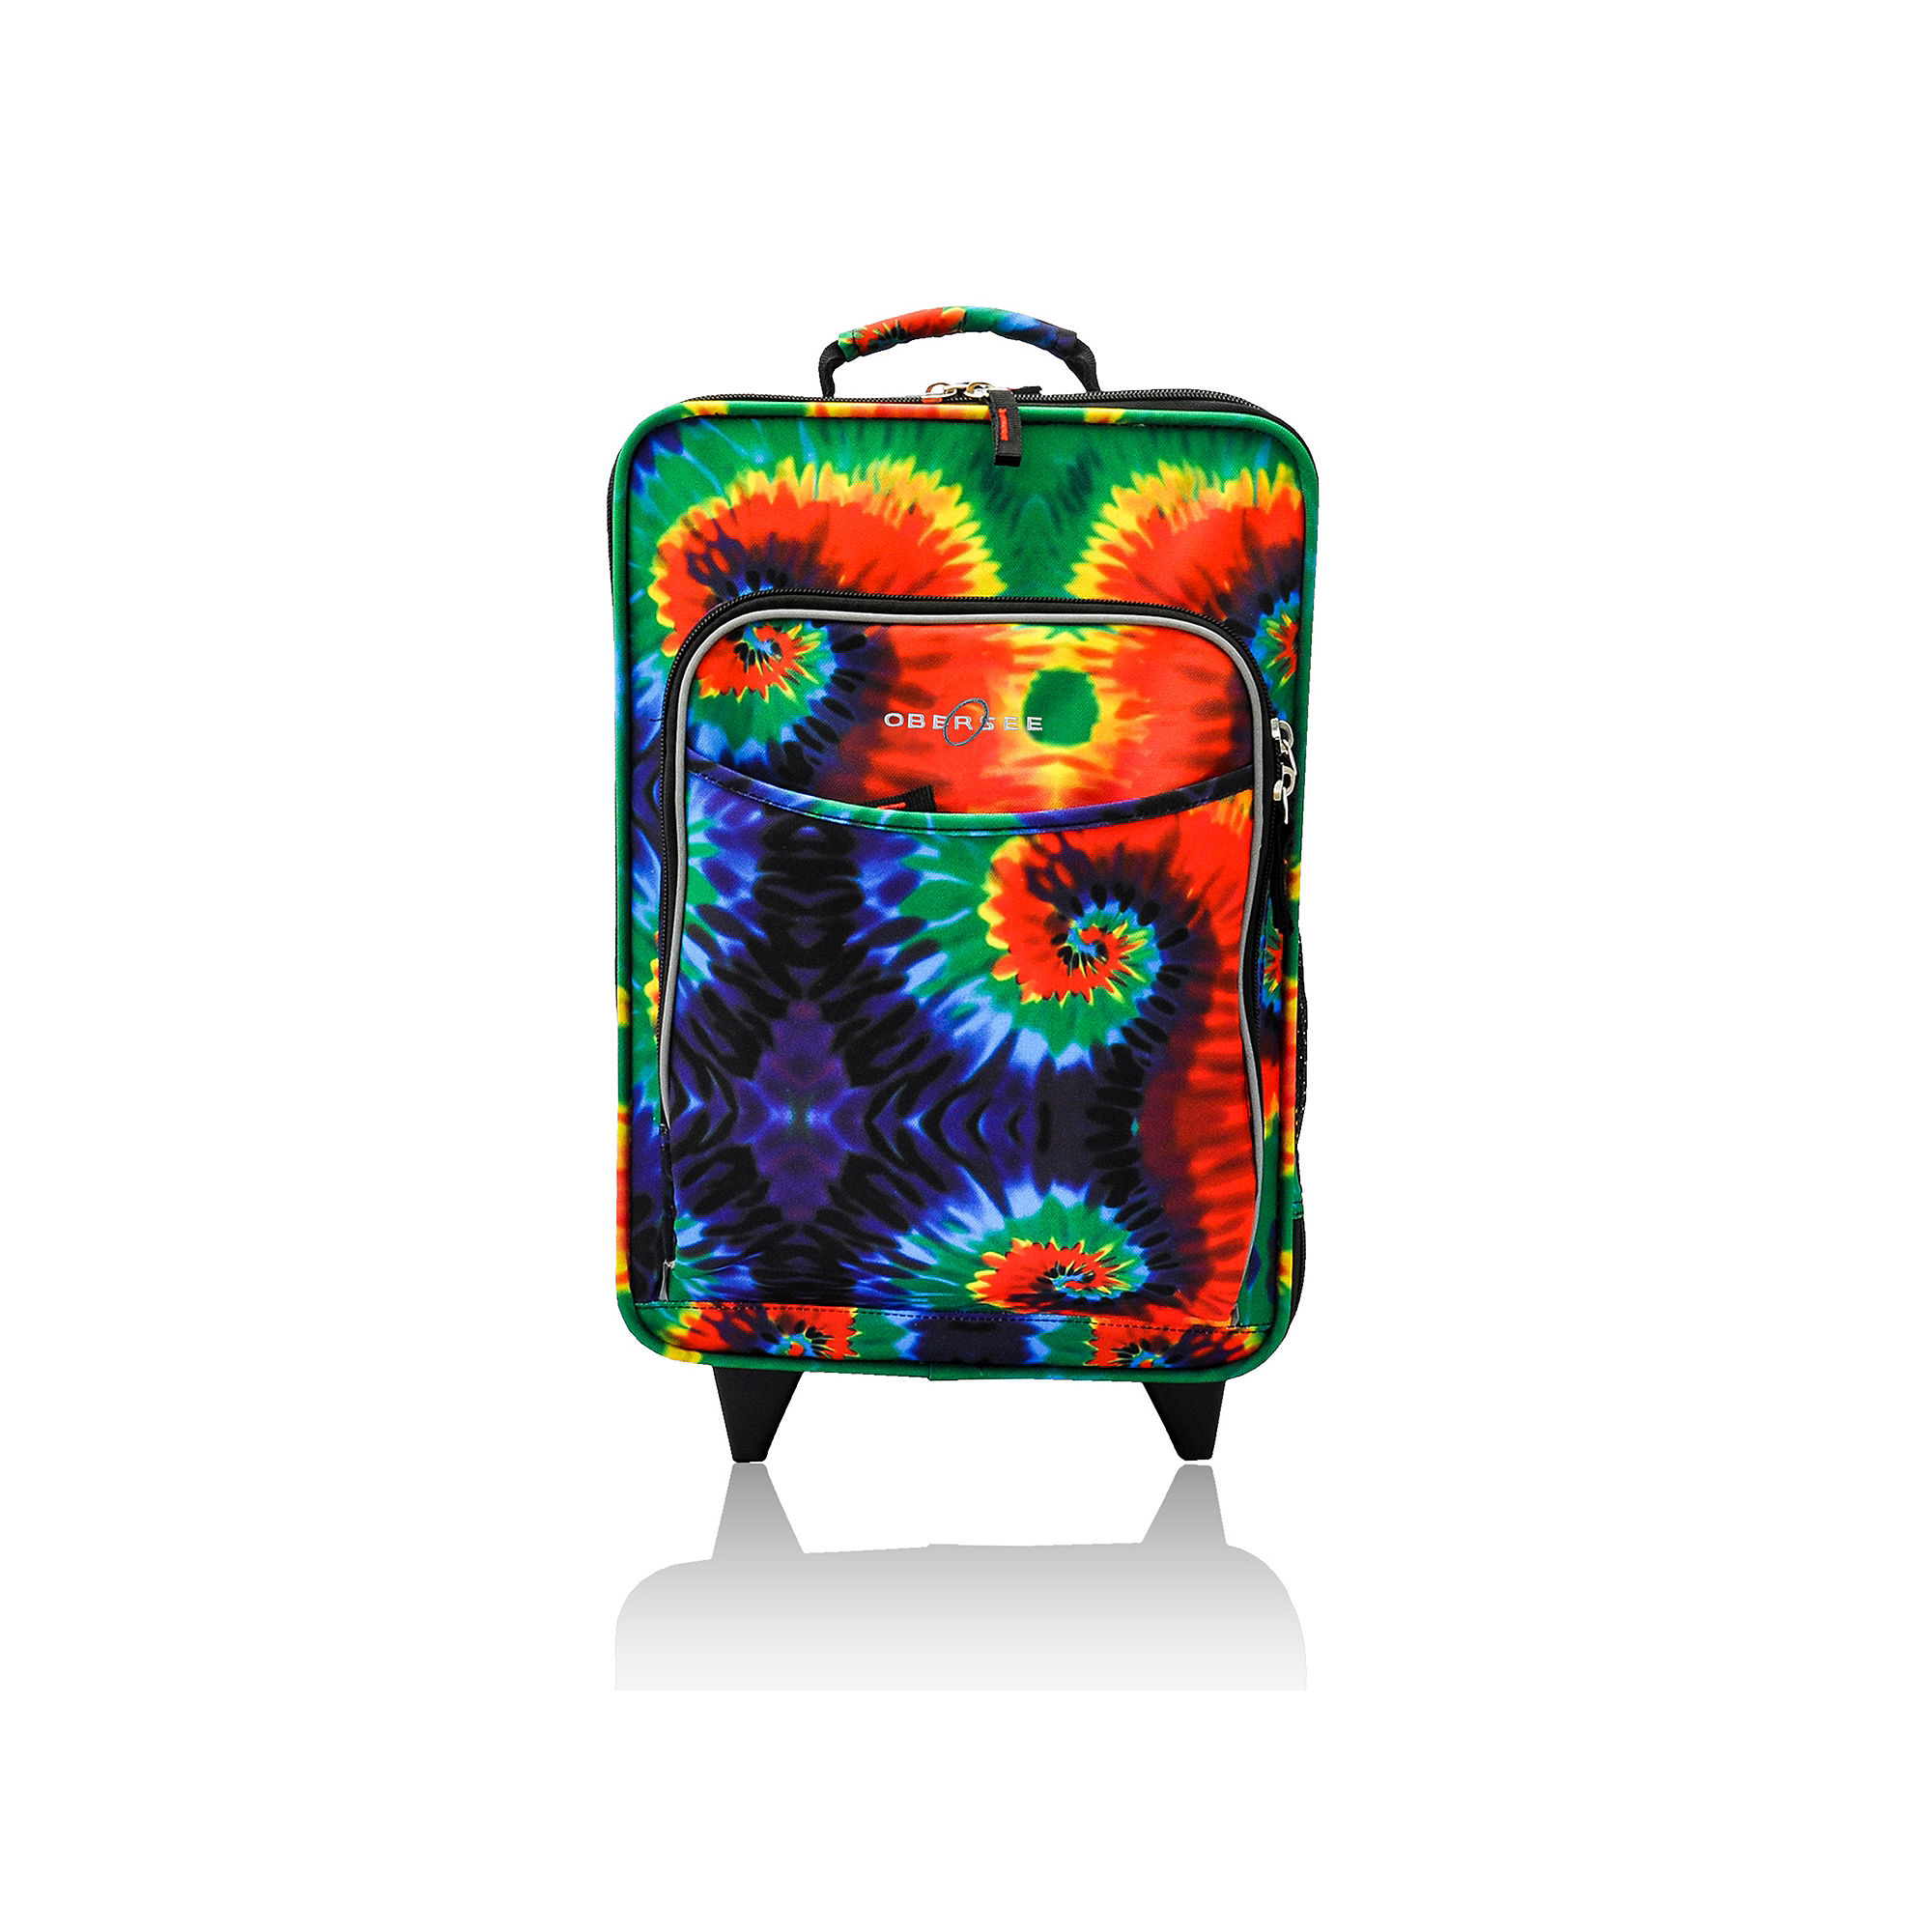 Obersee Kids Tie-Dye Upright Roller Luggage with Integrated Cooler